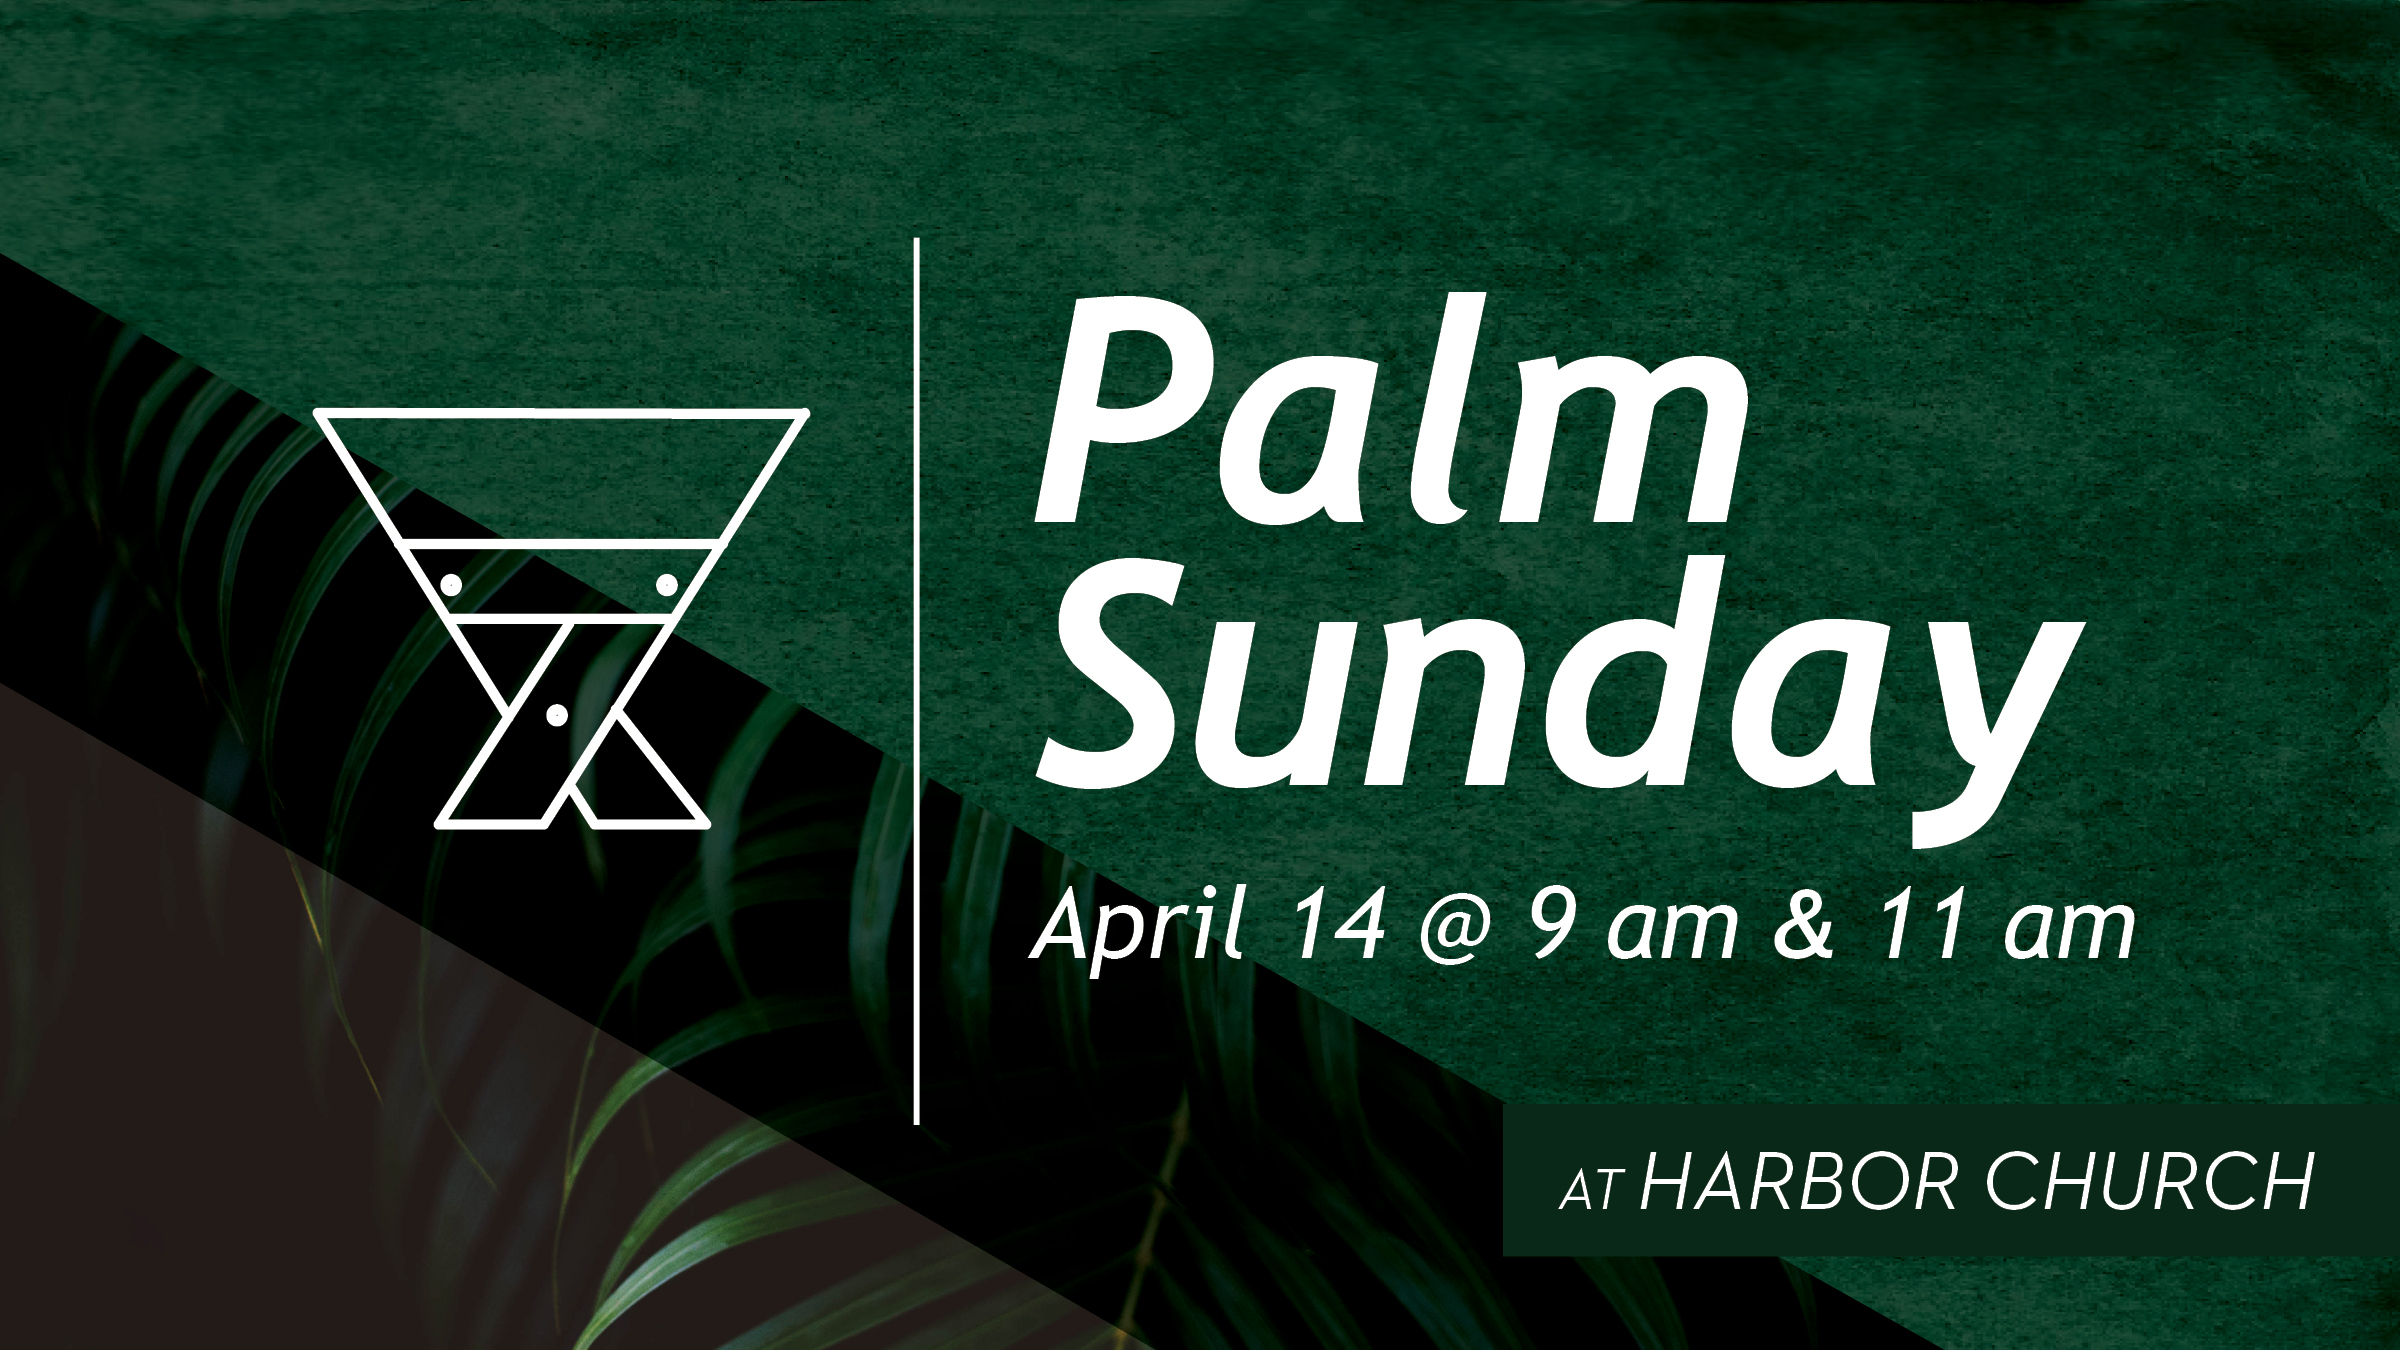 Palm+Sunday+Slide.jpg